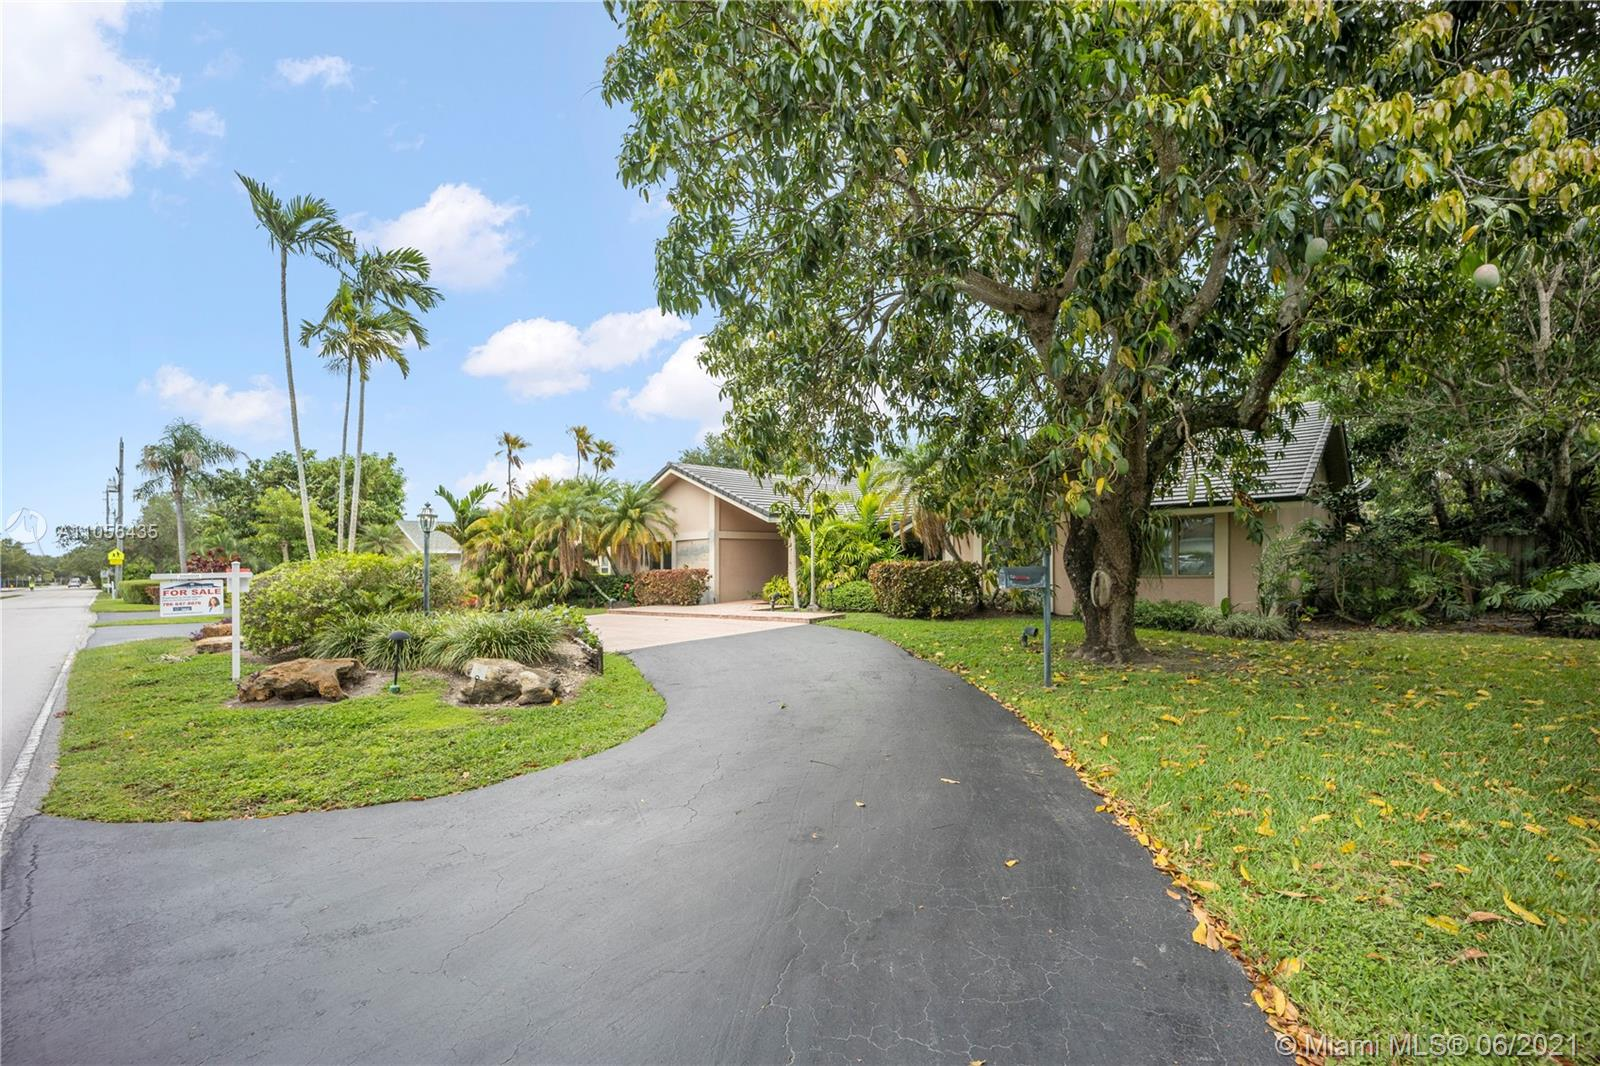 Listing A11056435 - Large Photo # 33